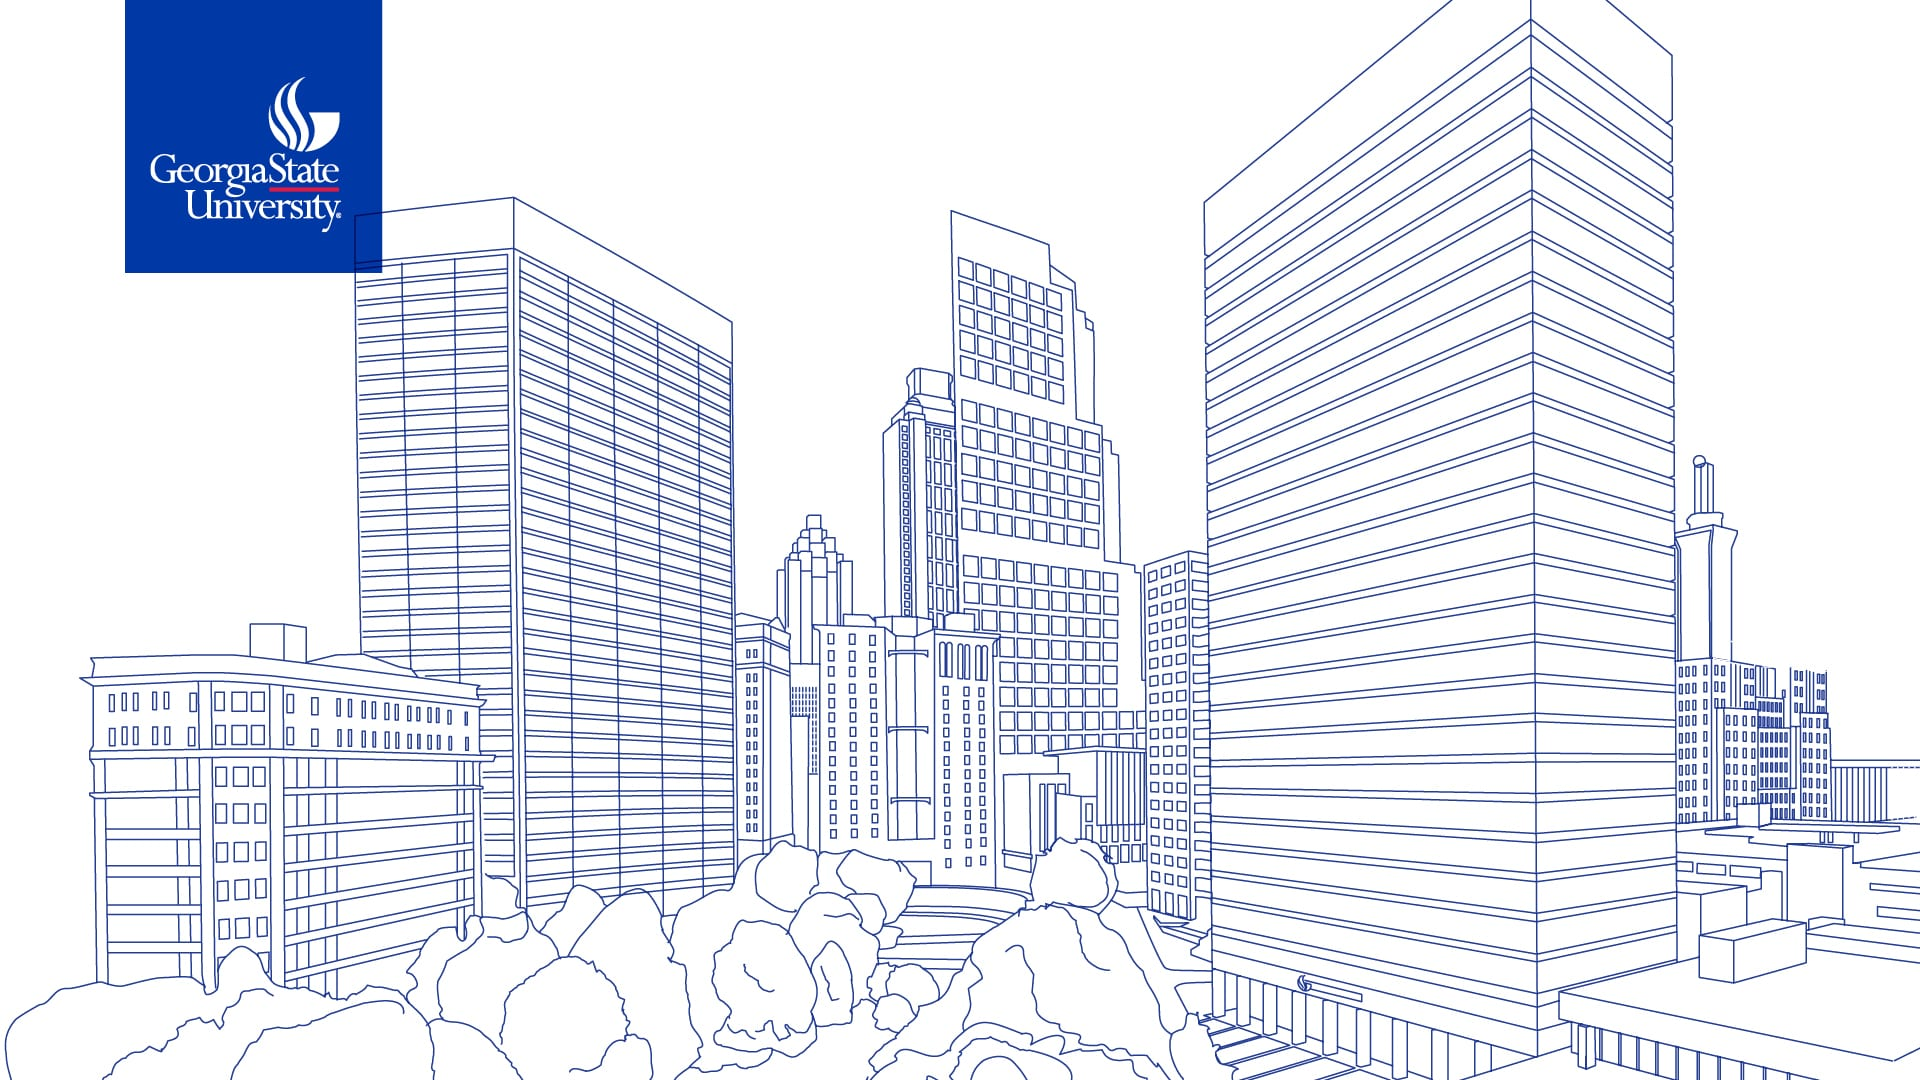 Sketch of Atlanta Skyline